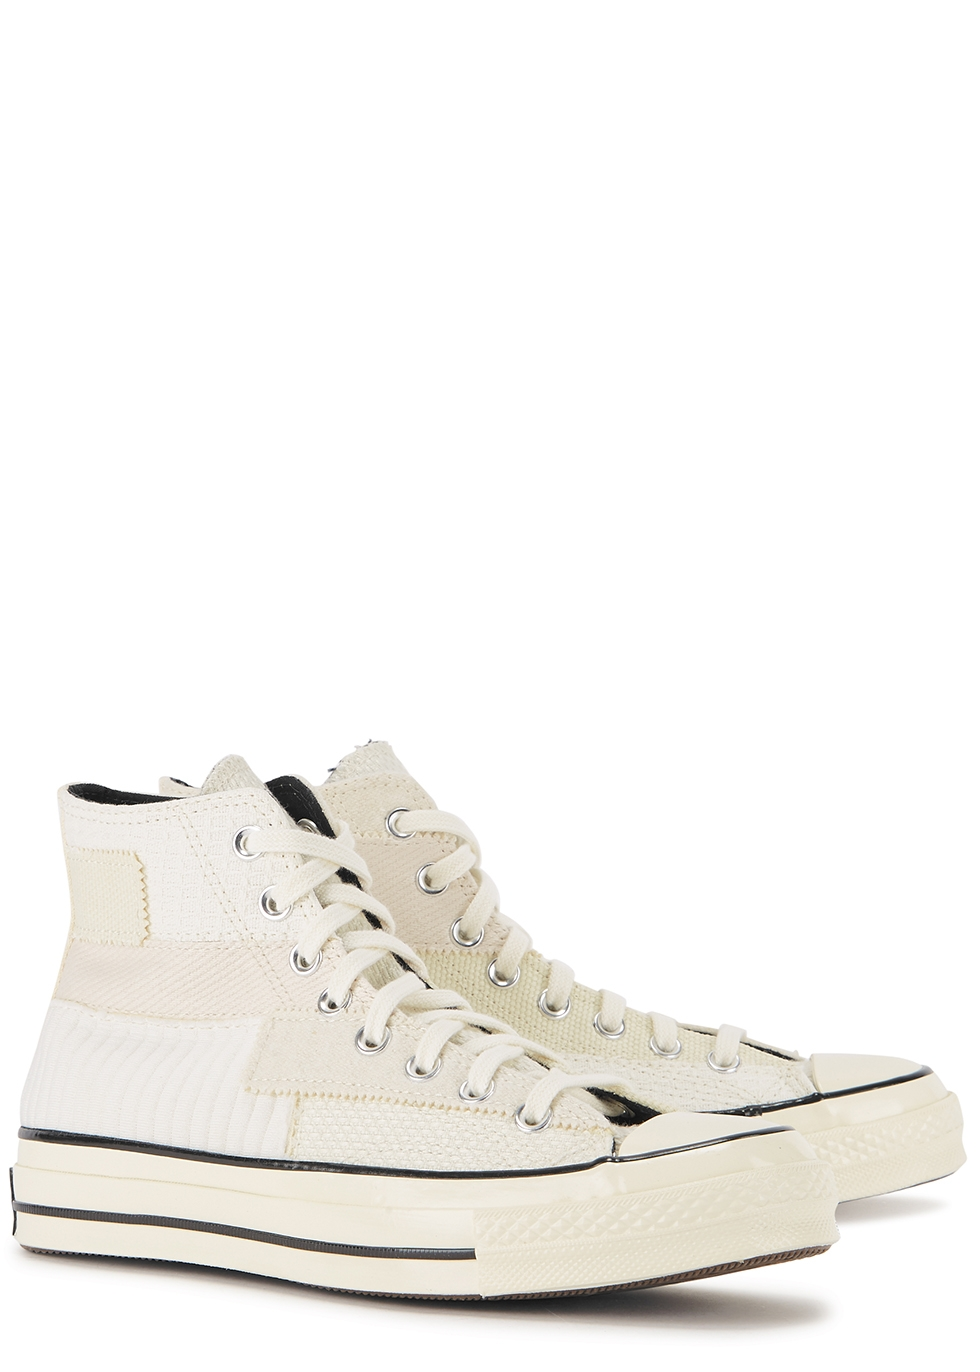 Converse Chuck 70 off white patchwork